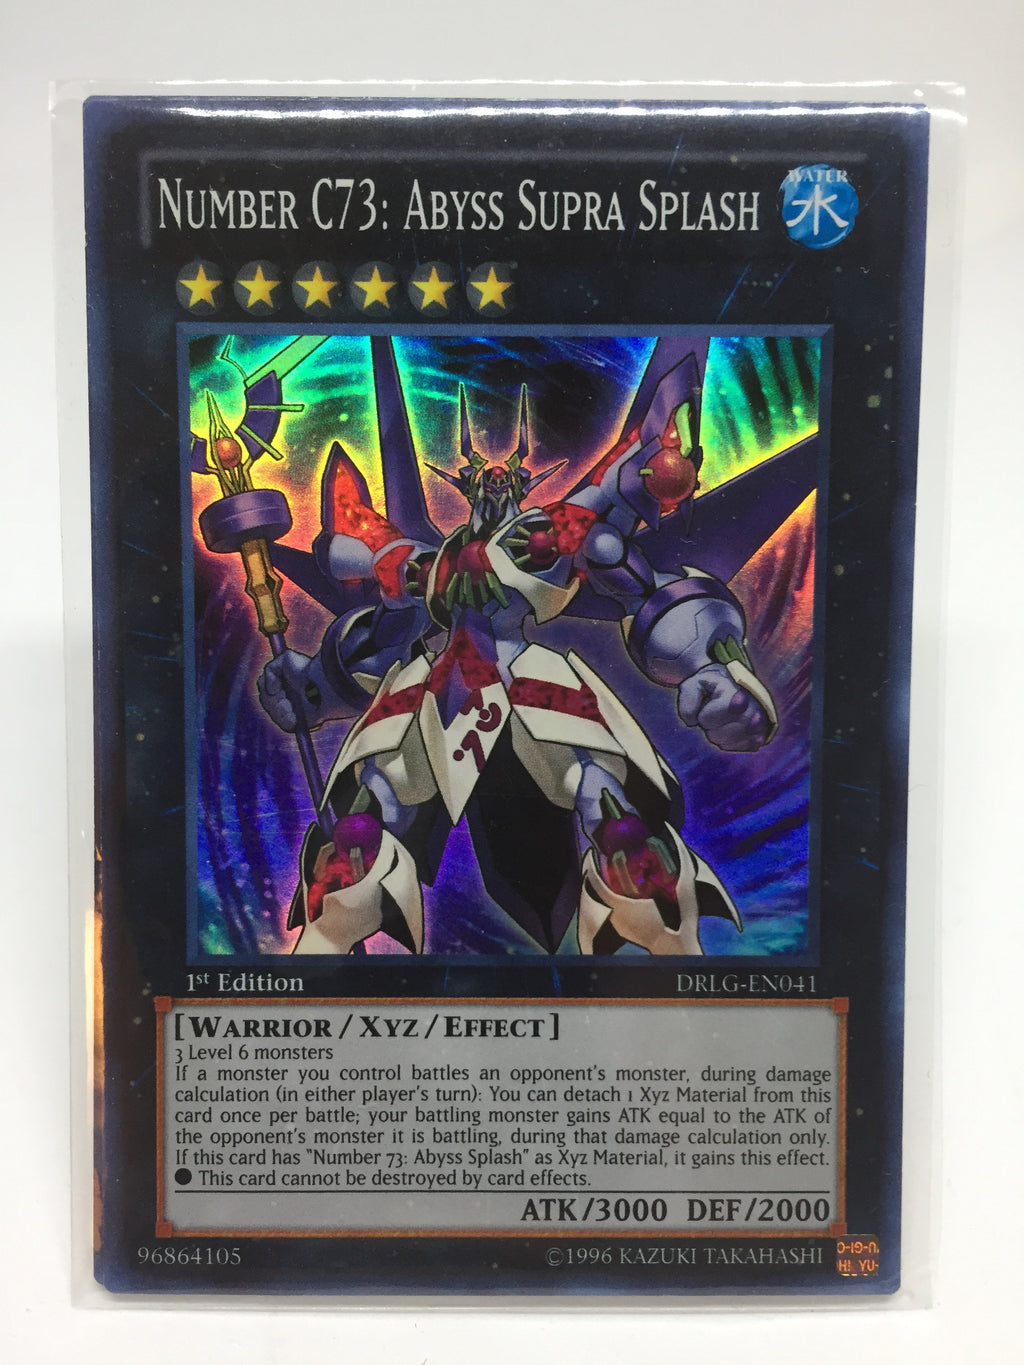 Number C73: Abyss Supra Splash / Super - DRLG-EN041 - 1st